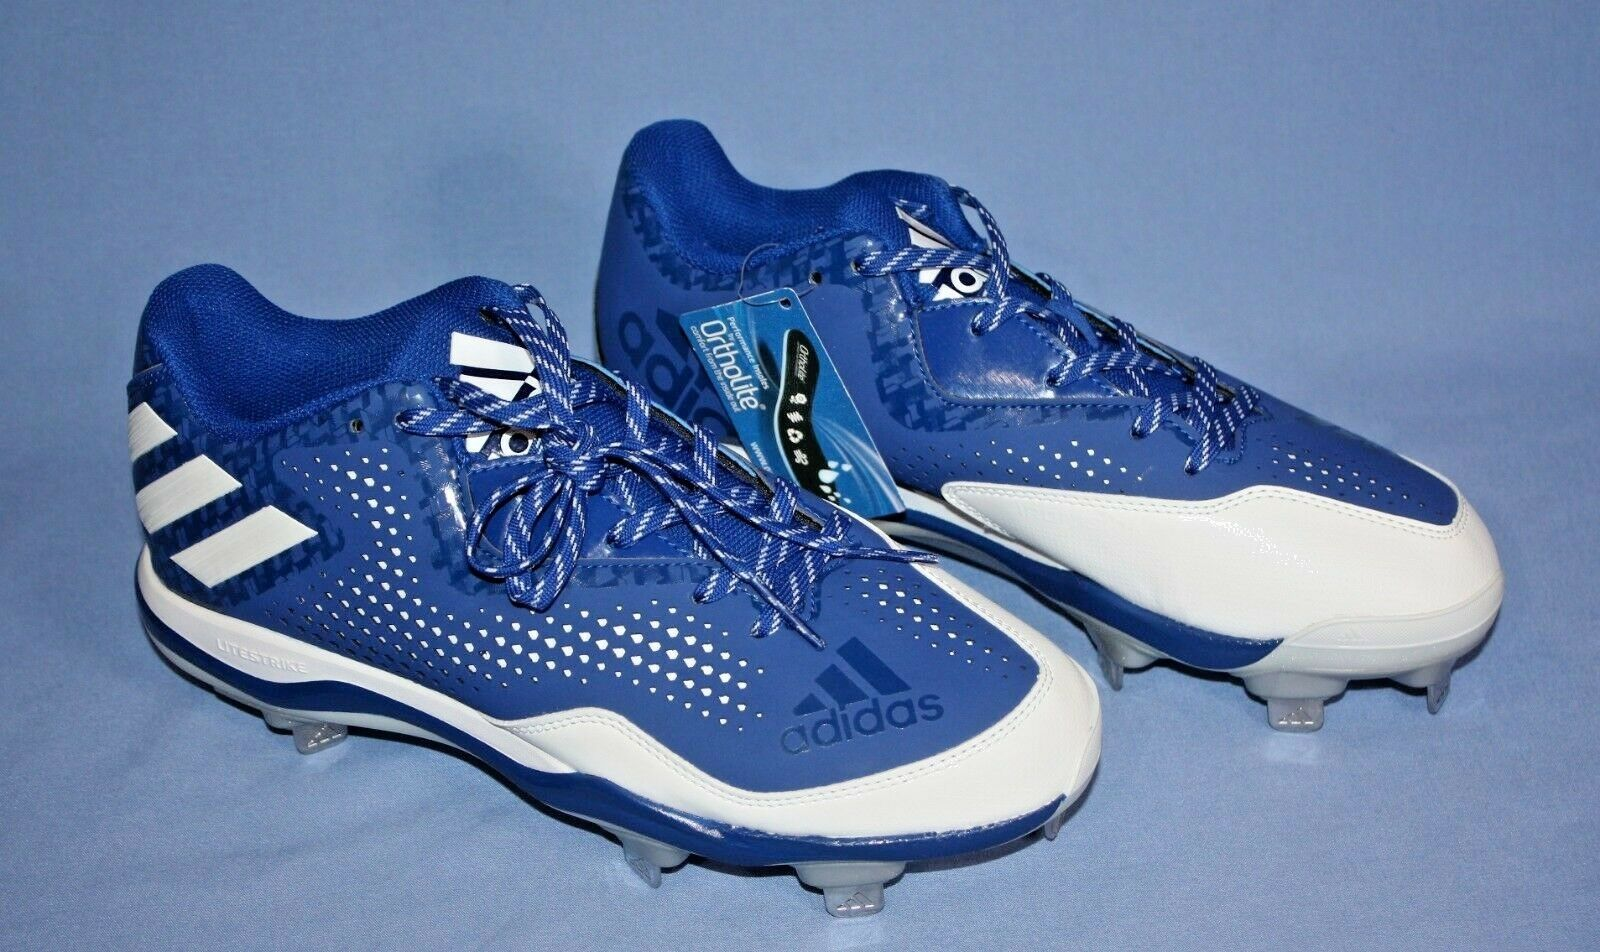 Adidas Power Alley 4 cleats mens baseball shoes size 8.5 9 bluee white new